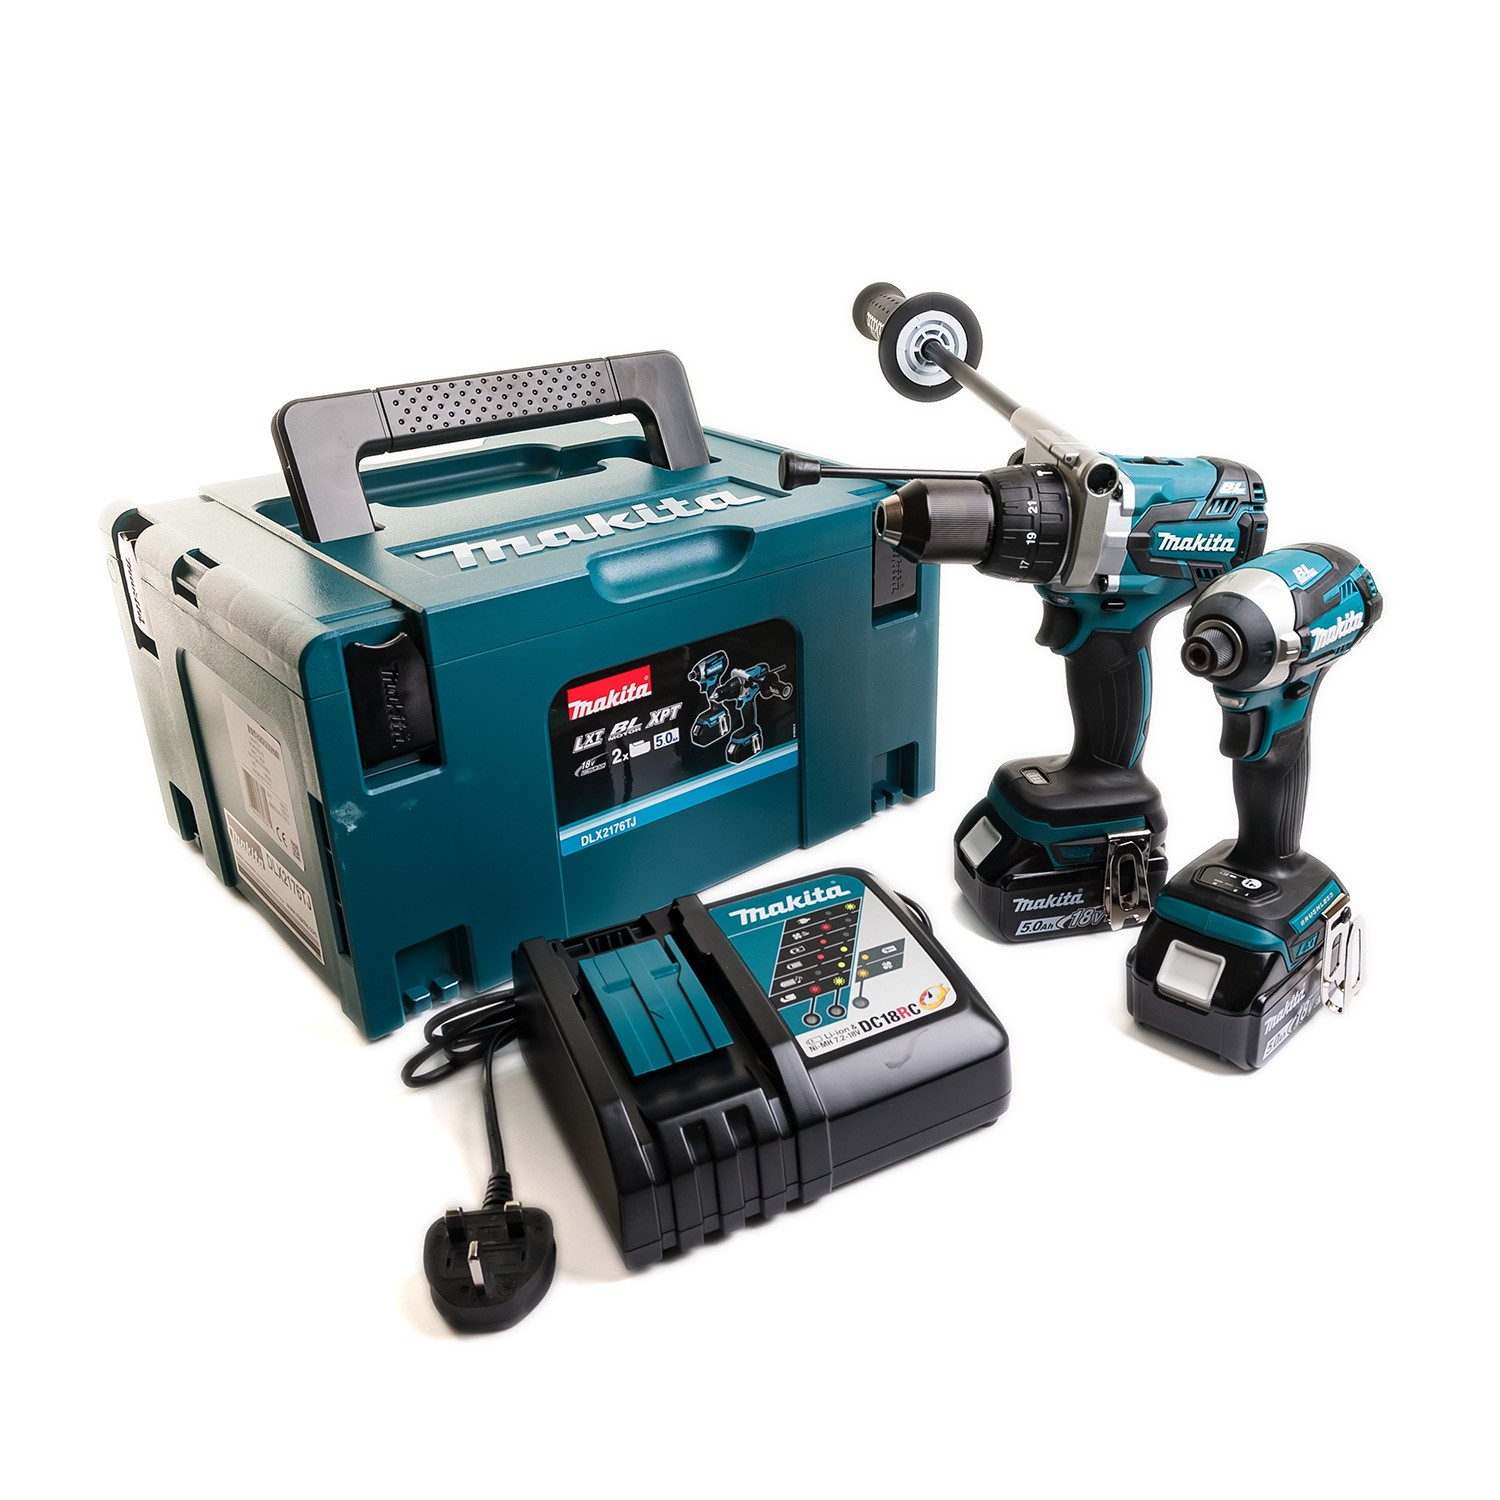 Makita DLX2176TJ 18v Brushless Impact Driver/Combi Drill Twin Kit inc 2x 5.0Ah Batts